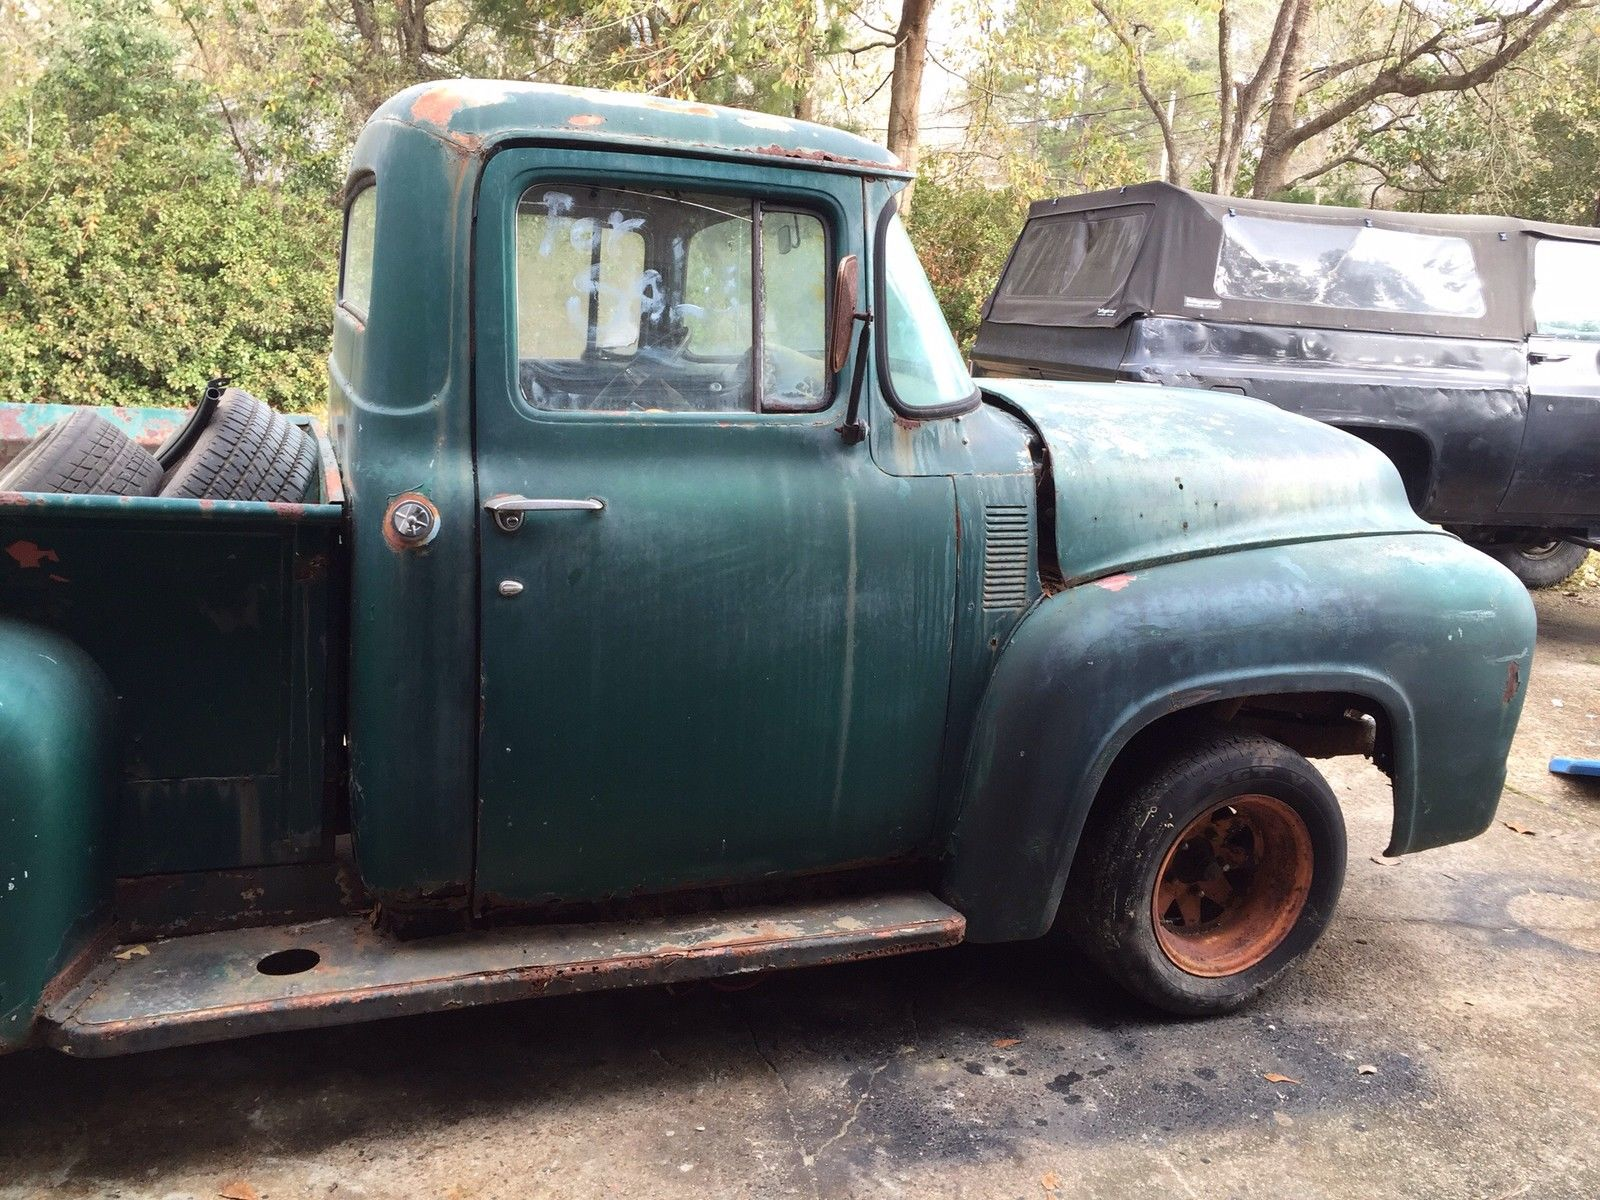 1956 Ford F100 F 100 Project Truck Hot Rod Rat Hotrod Ratrod 1955 Prevnext